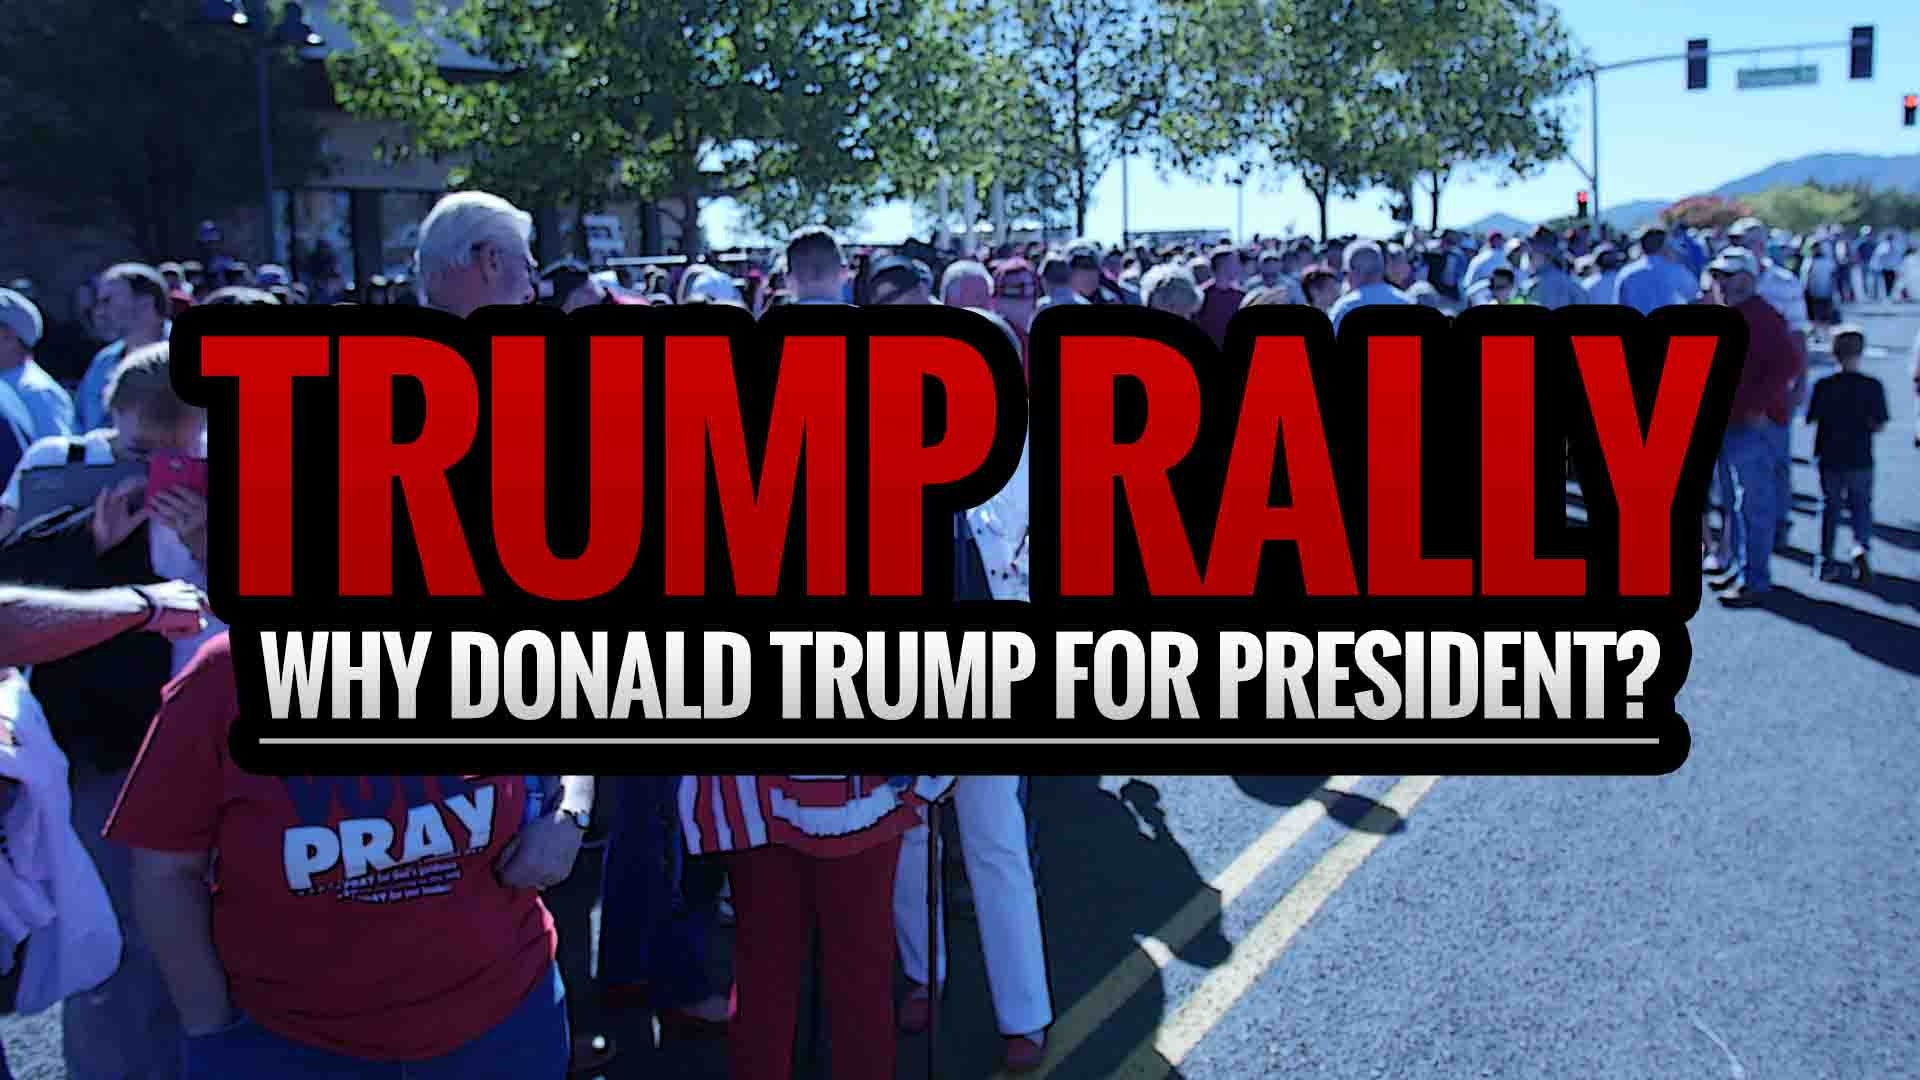 TRUMP RALLY PRESCOTT ARIZONA